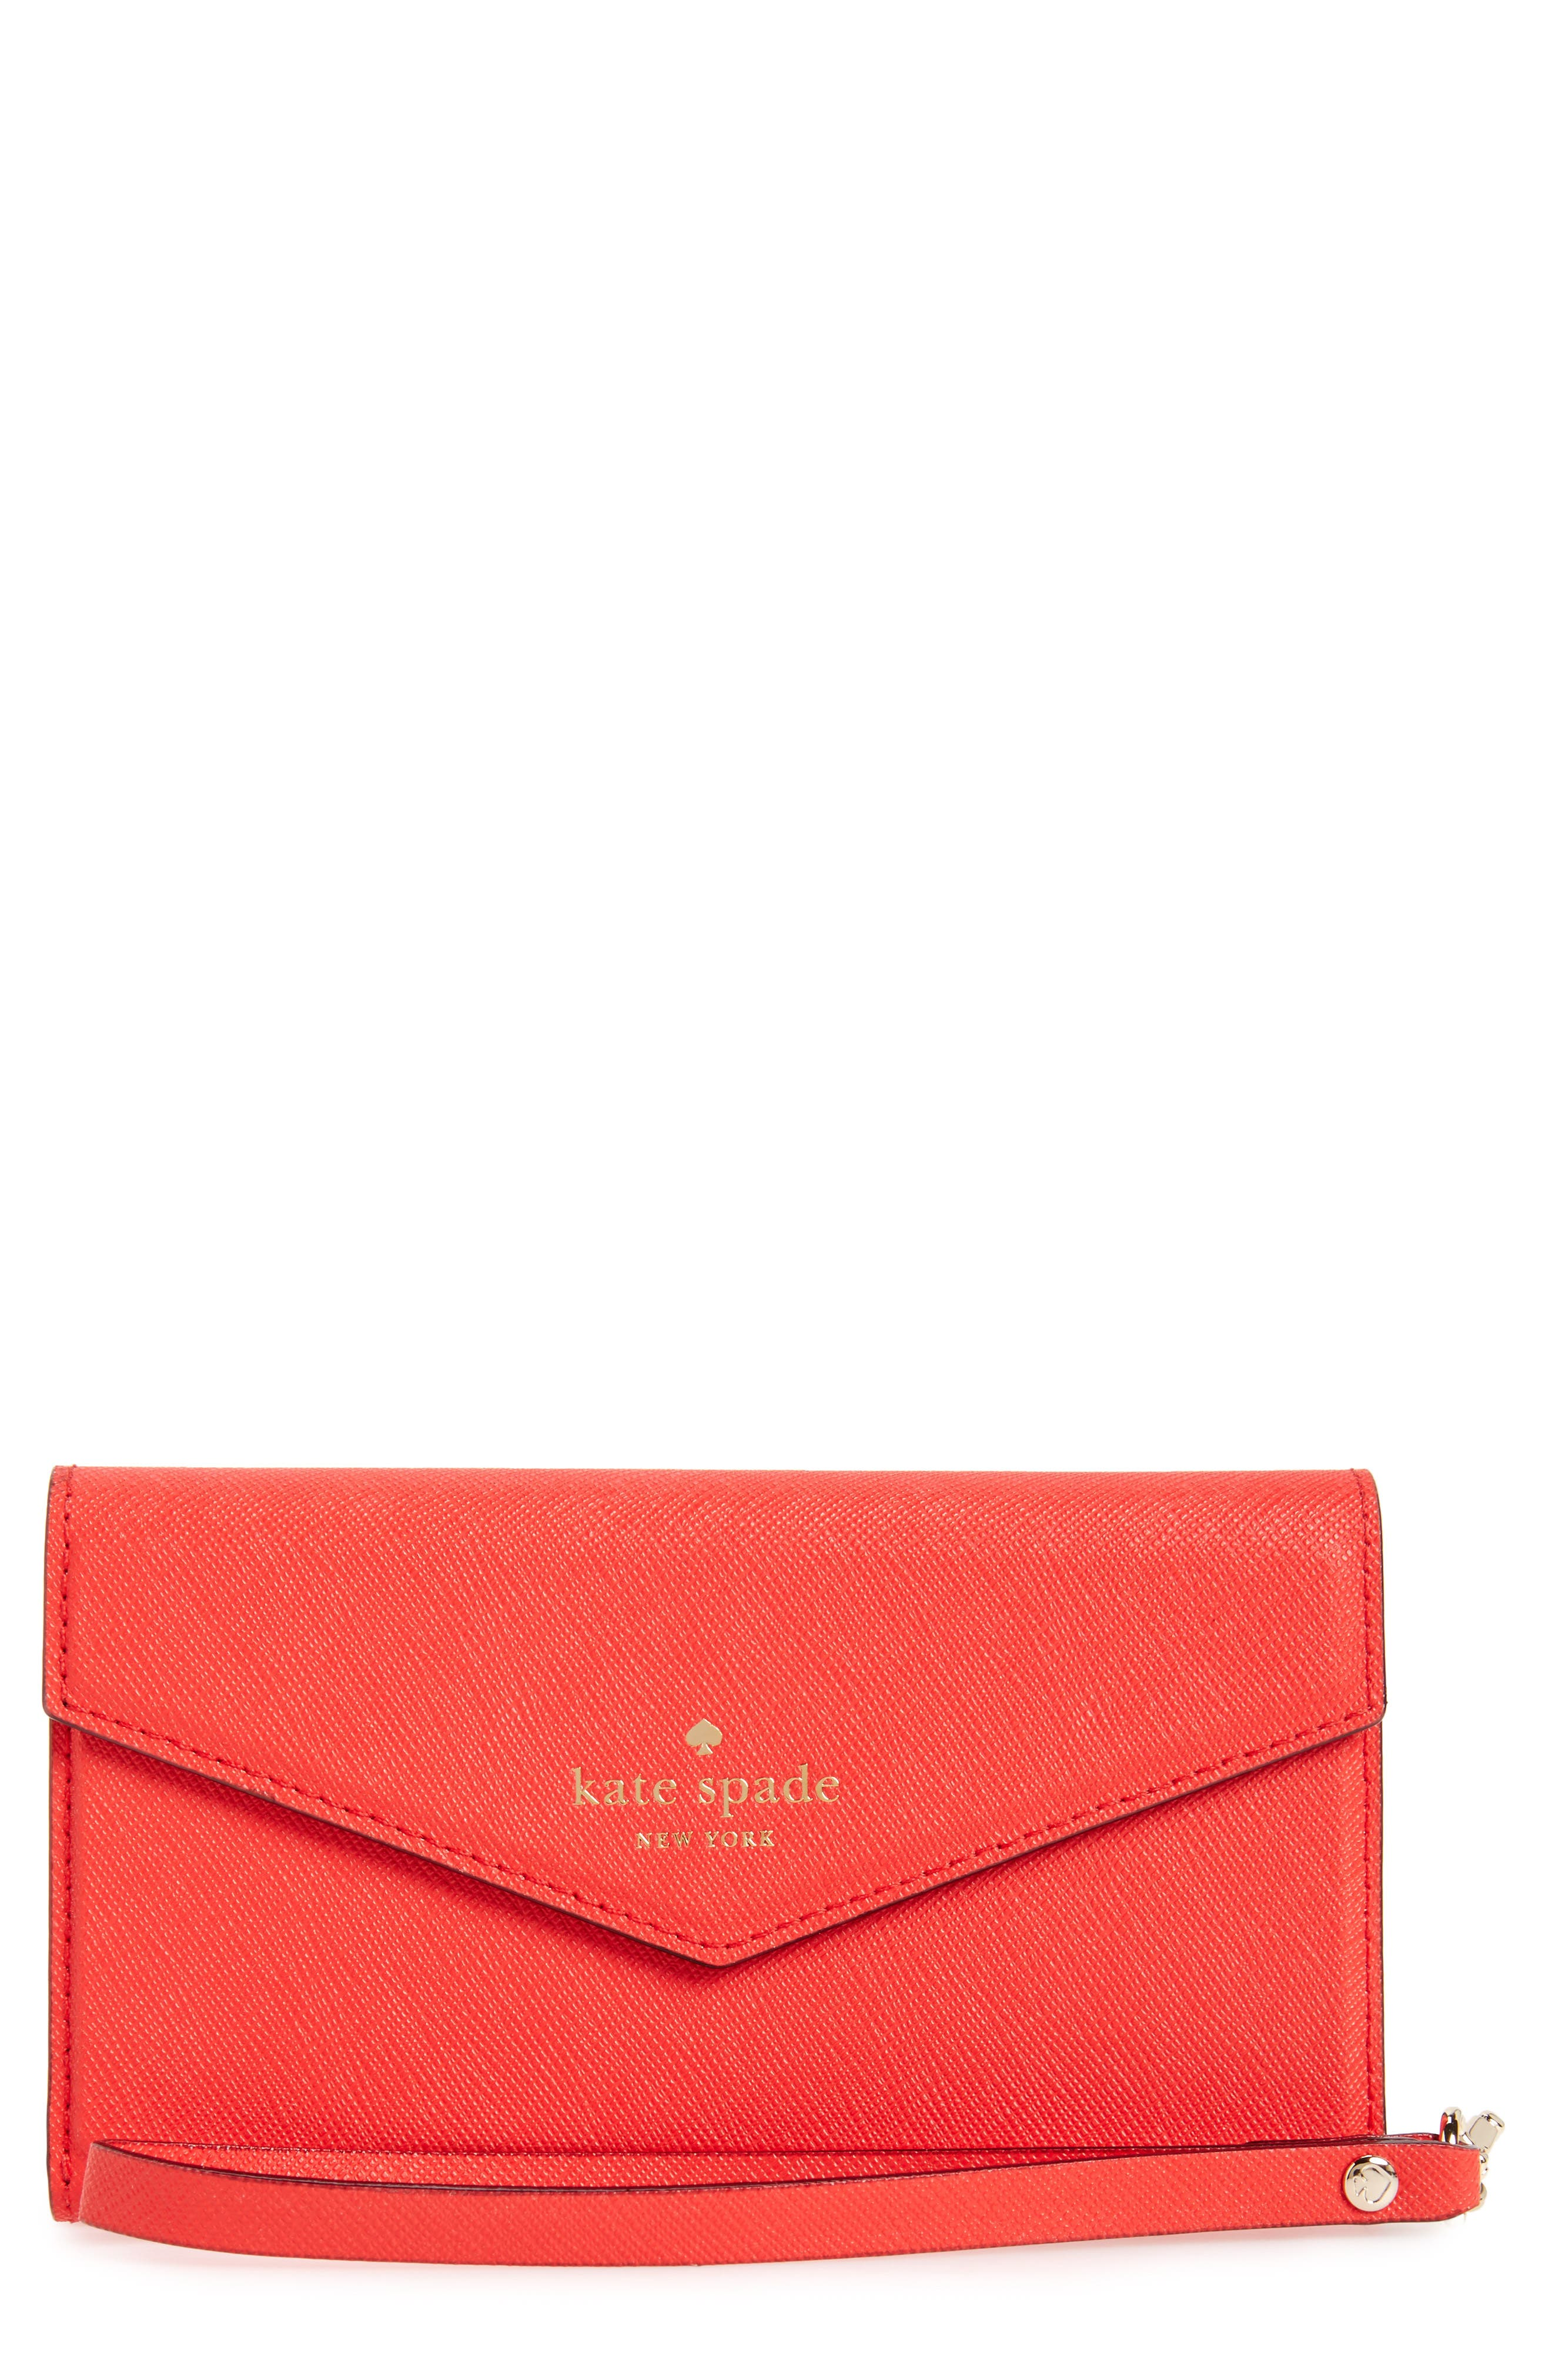 kate spade new york iPhone 7 & 7 Plus leather wristlet